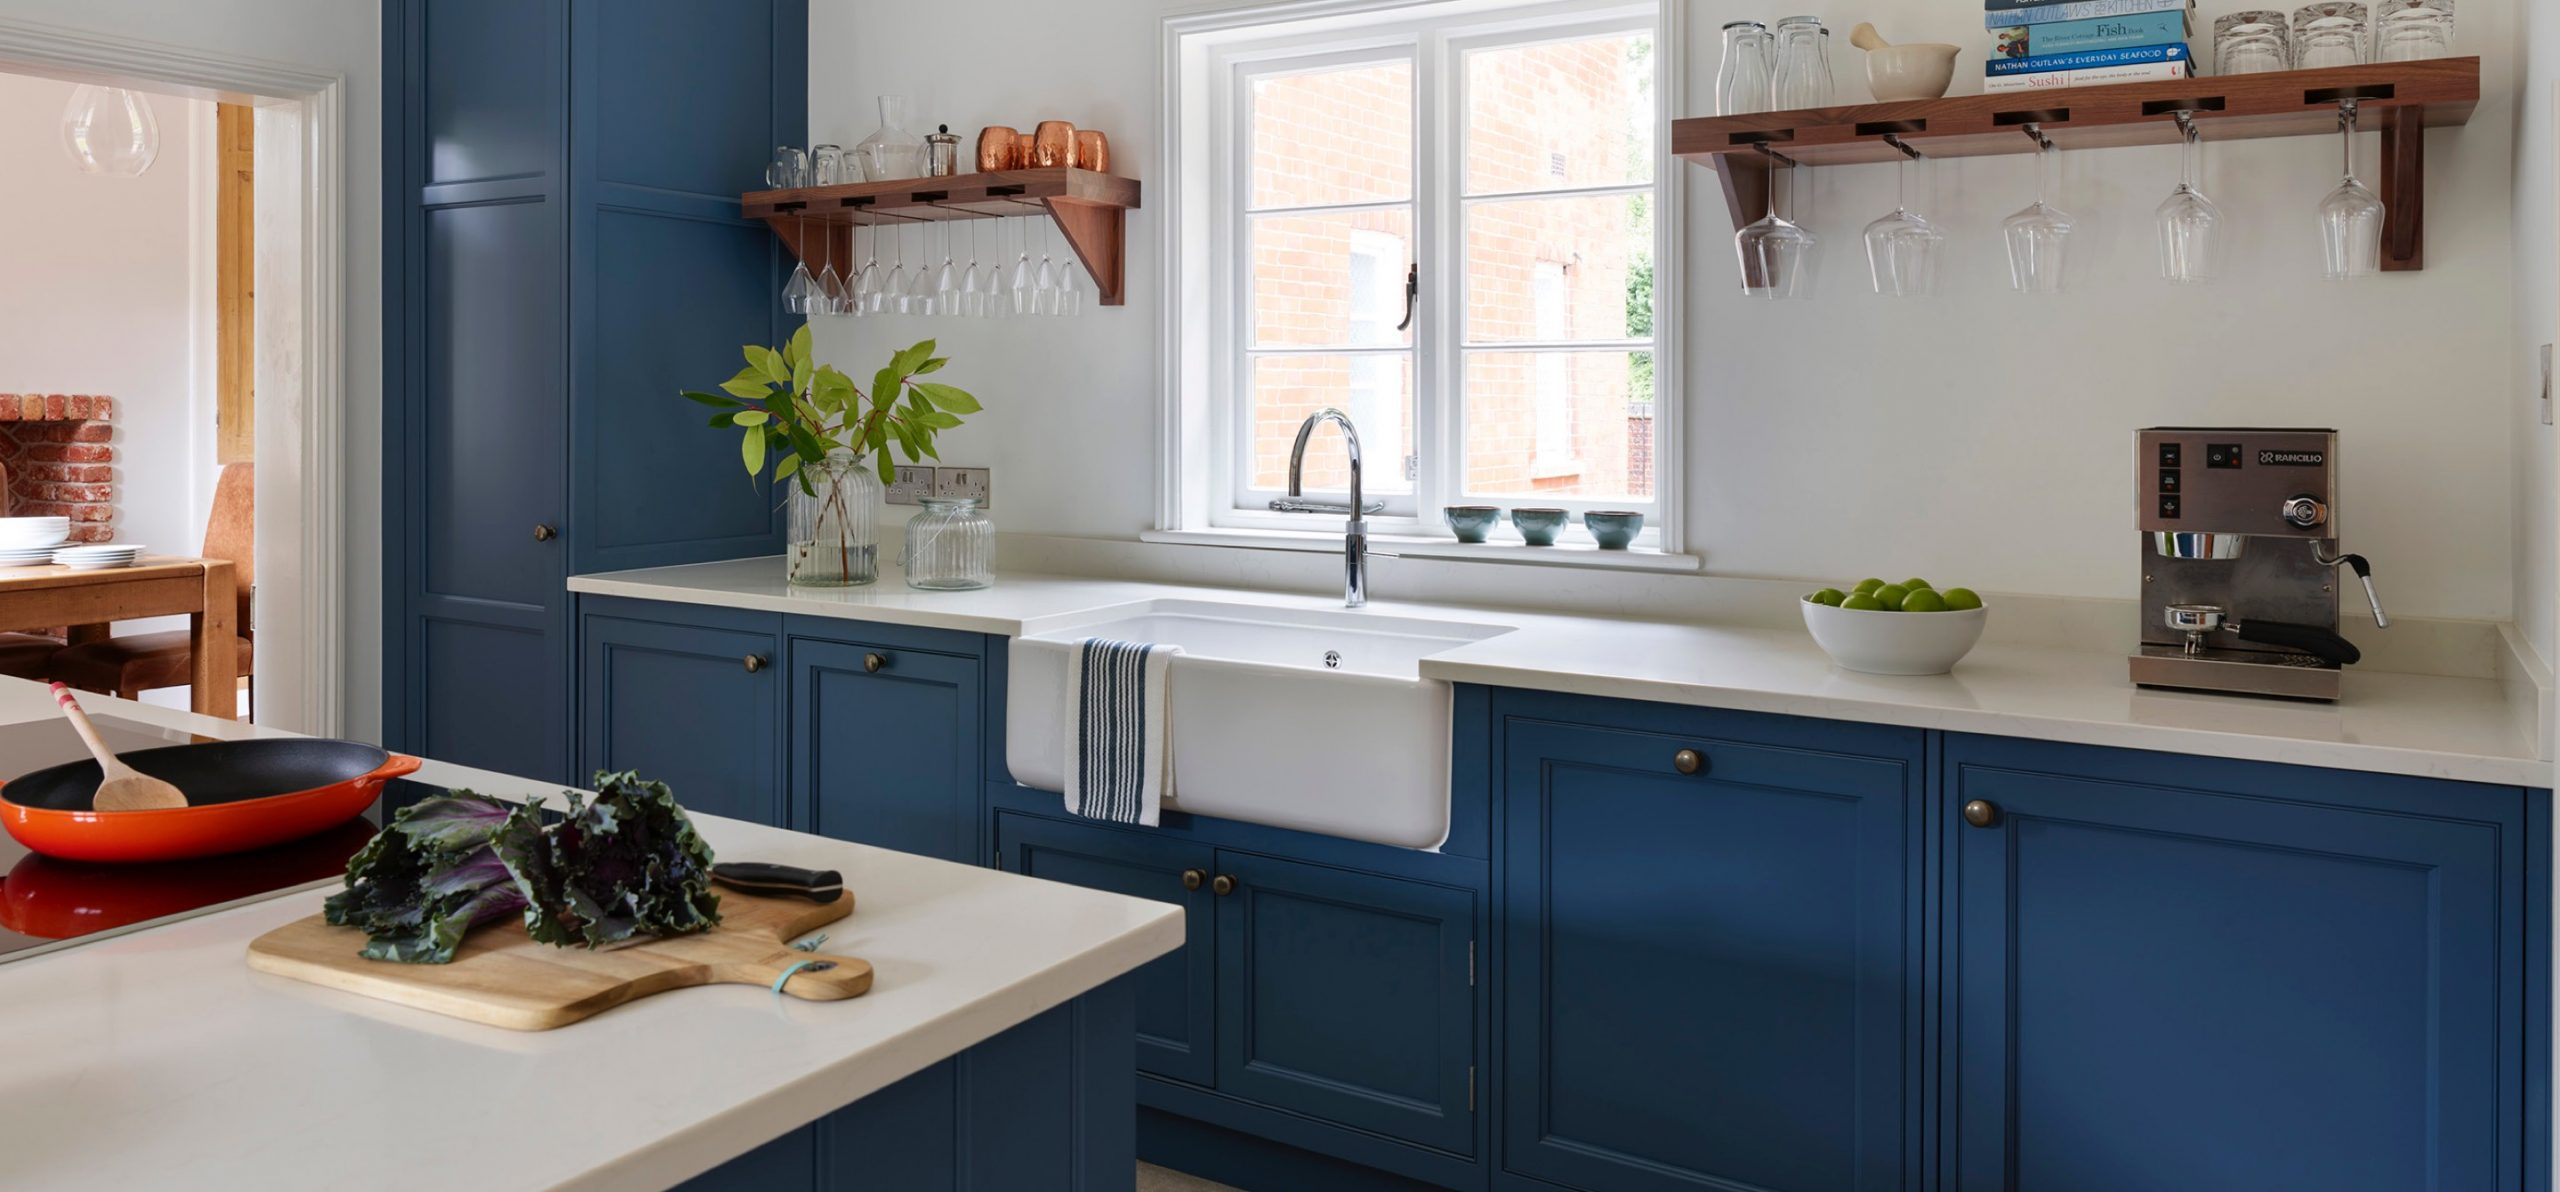 Blue and white traditional hand-made kitchen with composite worktop and island unit